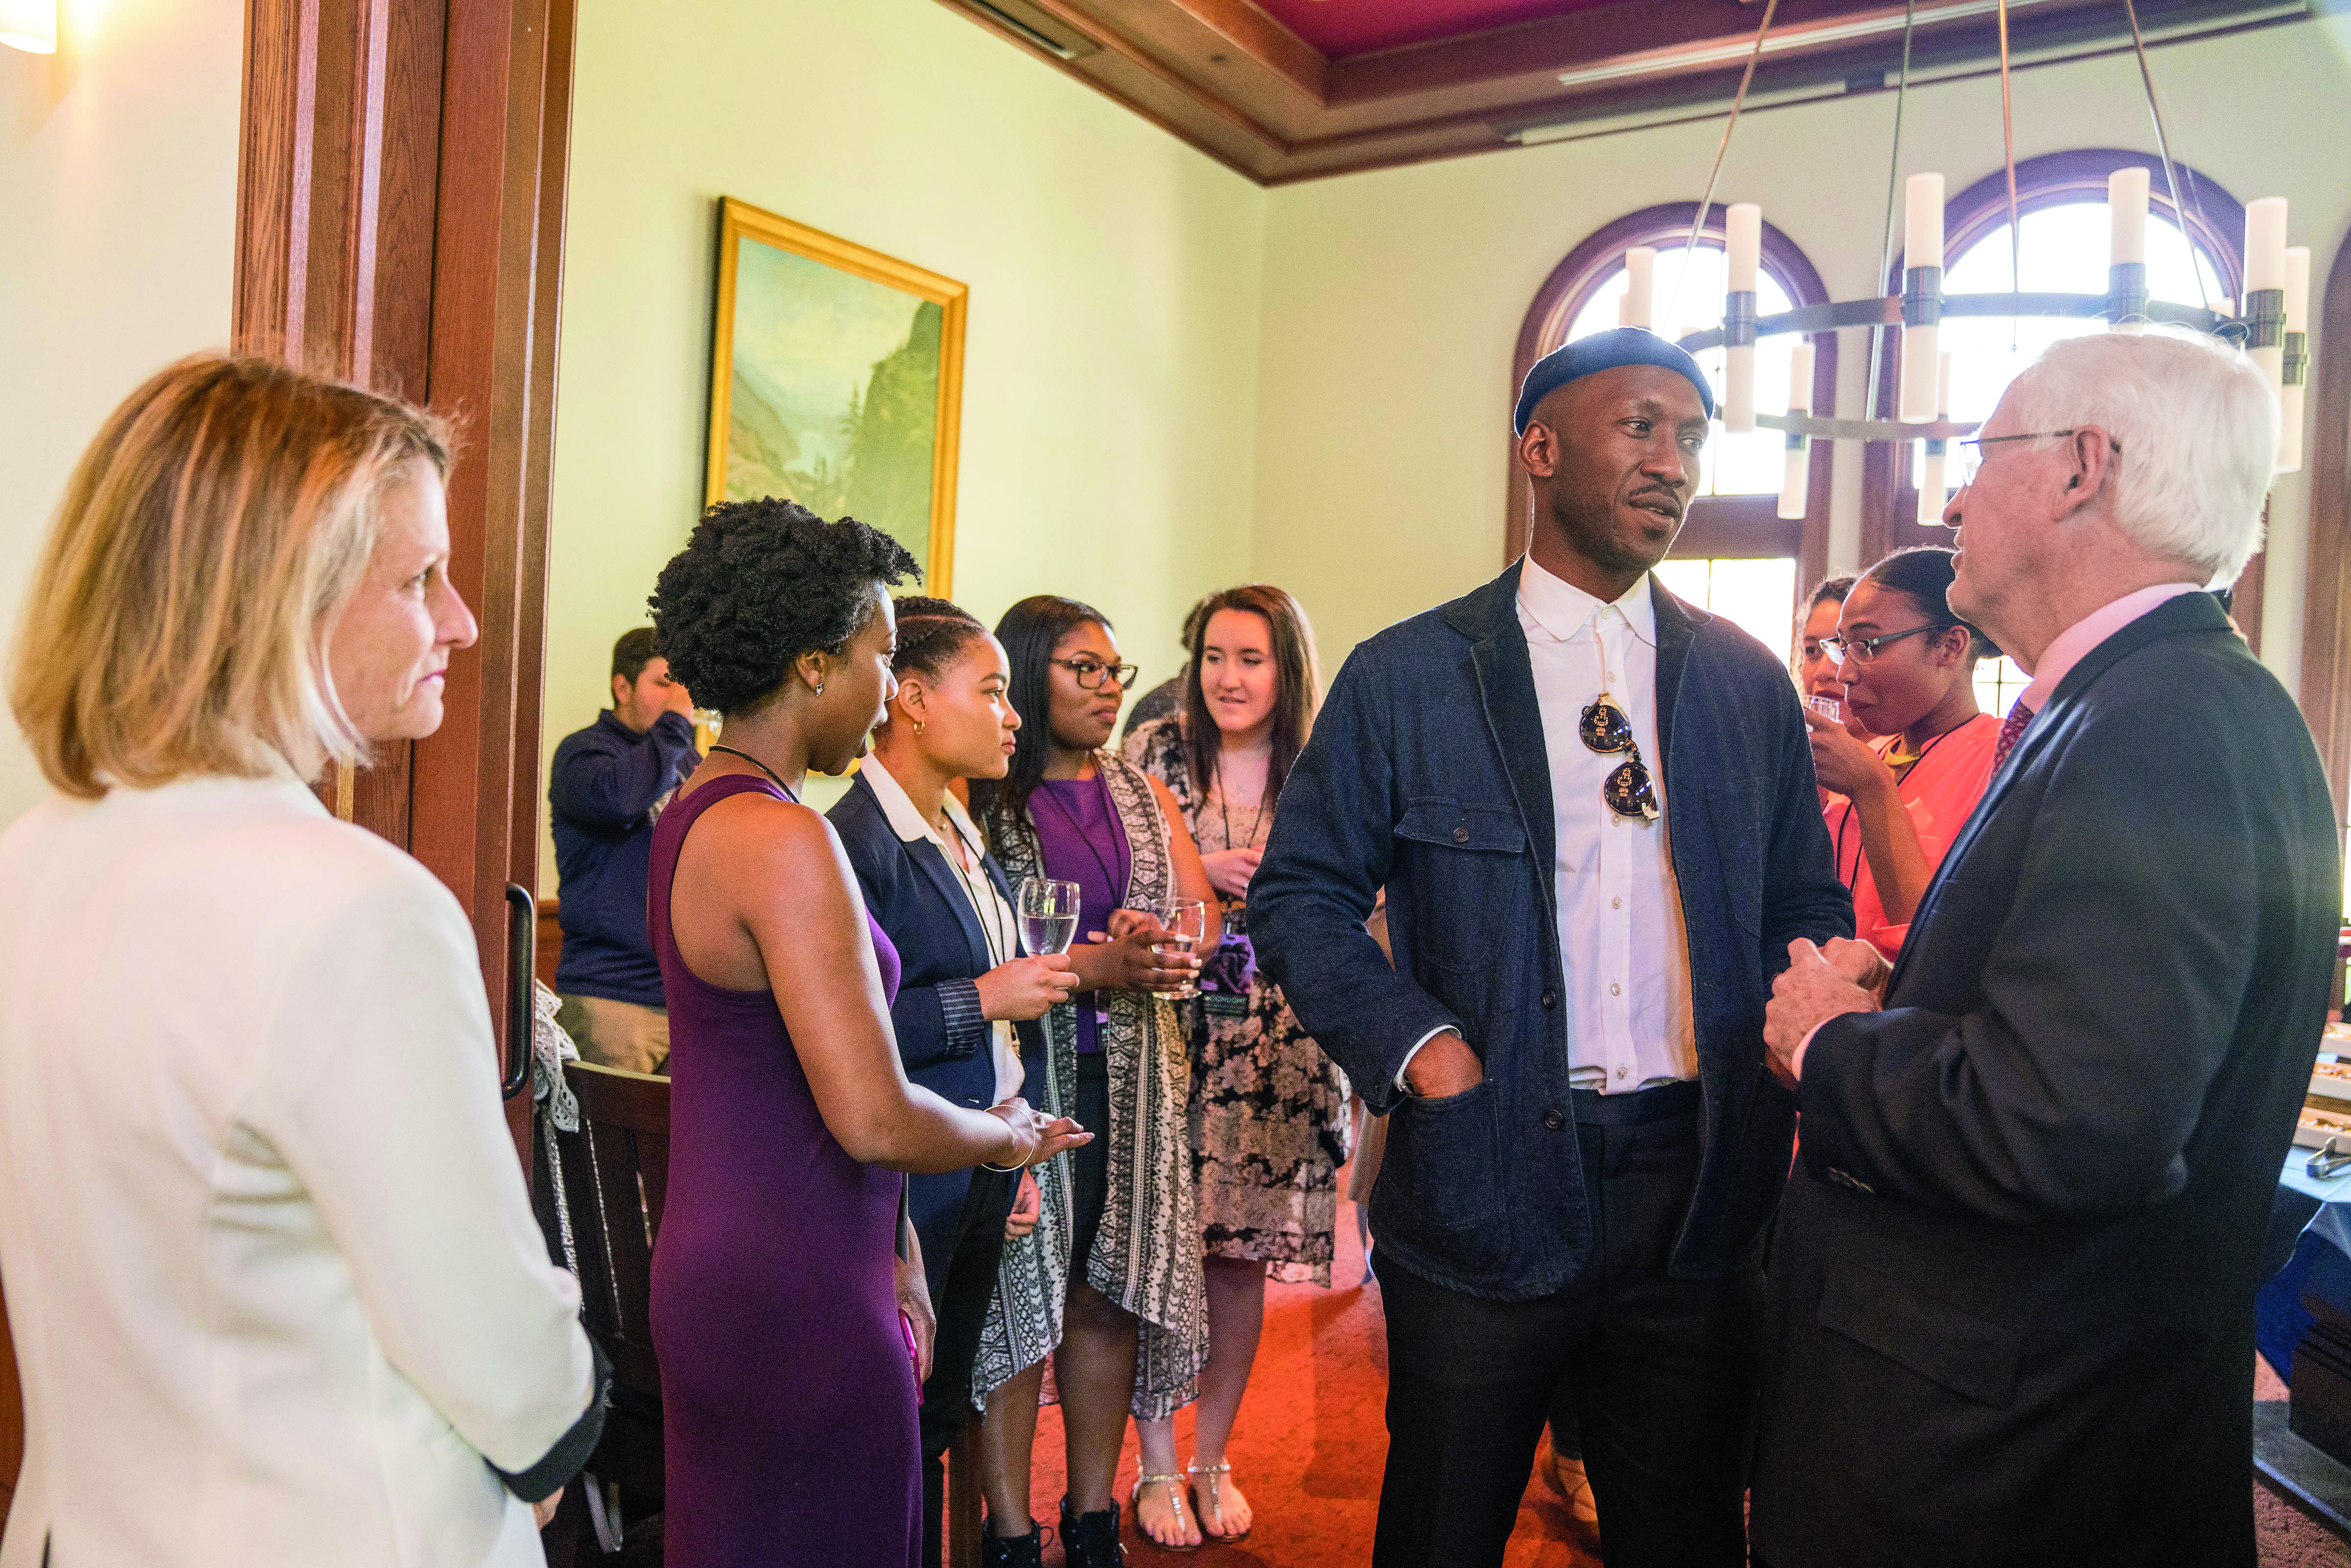 Mahershala Ali '96 with President James Donahue and with students at a reception for the HP program.